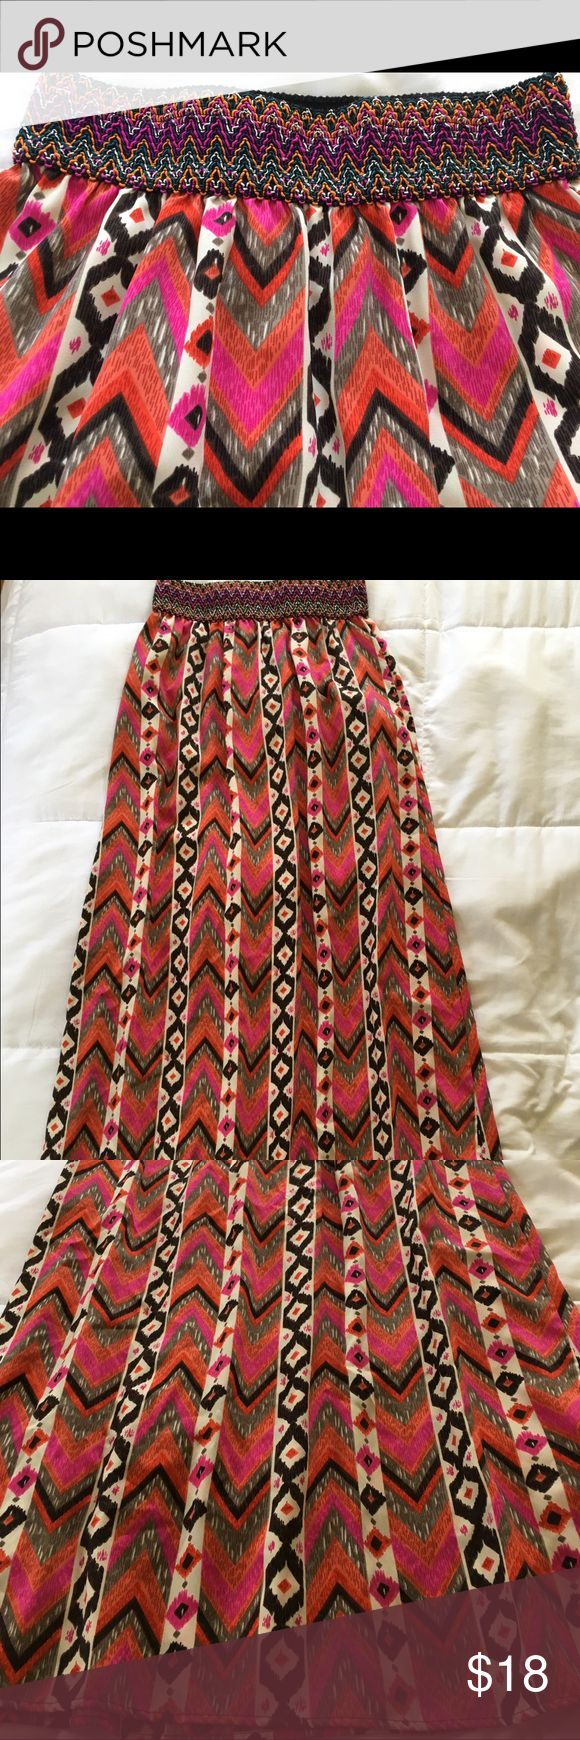 NEW BOUTIQUE TRIBAL PRINT MAXI SKIRT~SMALL BOUTIQUE BRAND NEW SEXY STRAIGHT TRIBAL MAXI SKIRT WITH WIDE BANDED WAIST DeJaVu Skirts Maxi